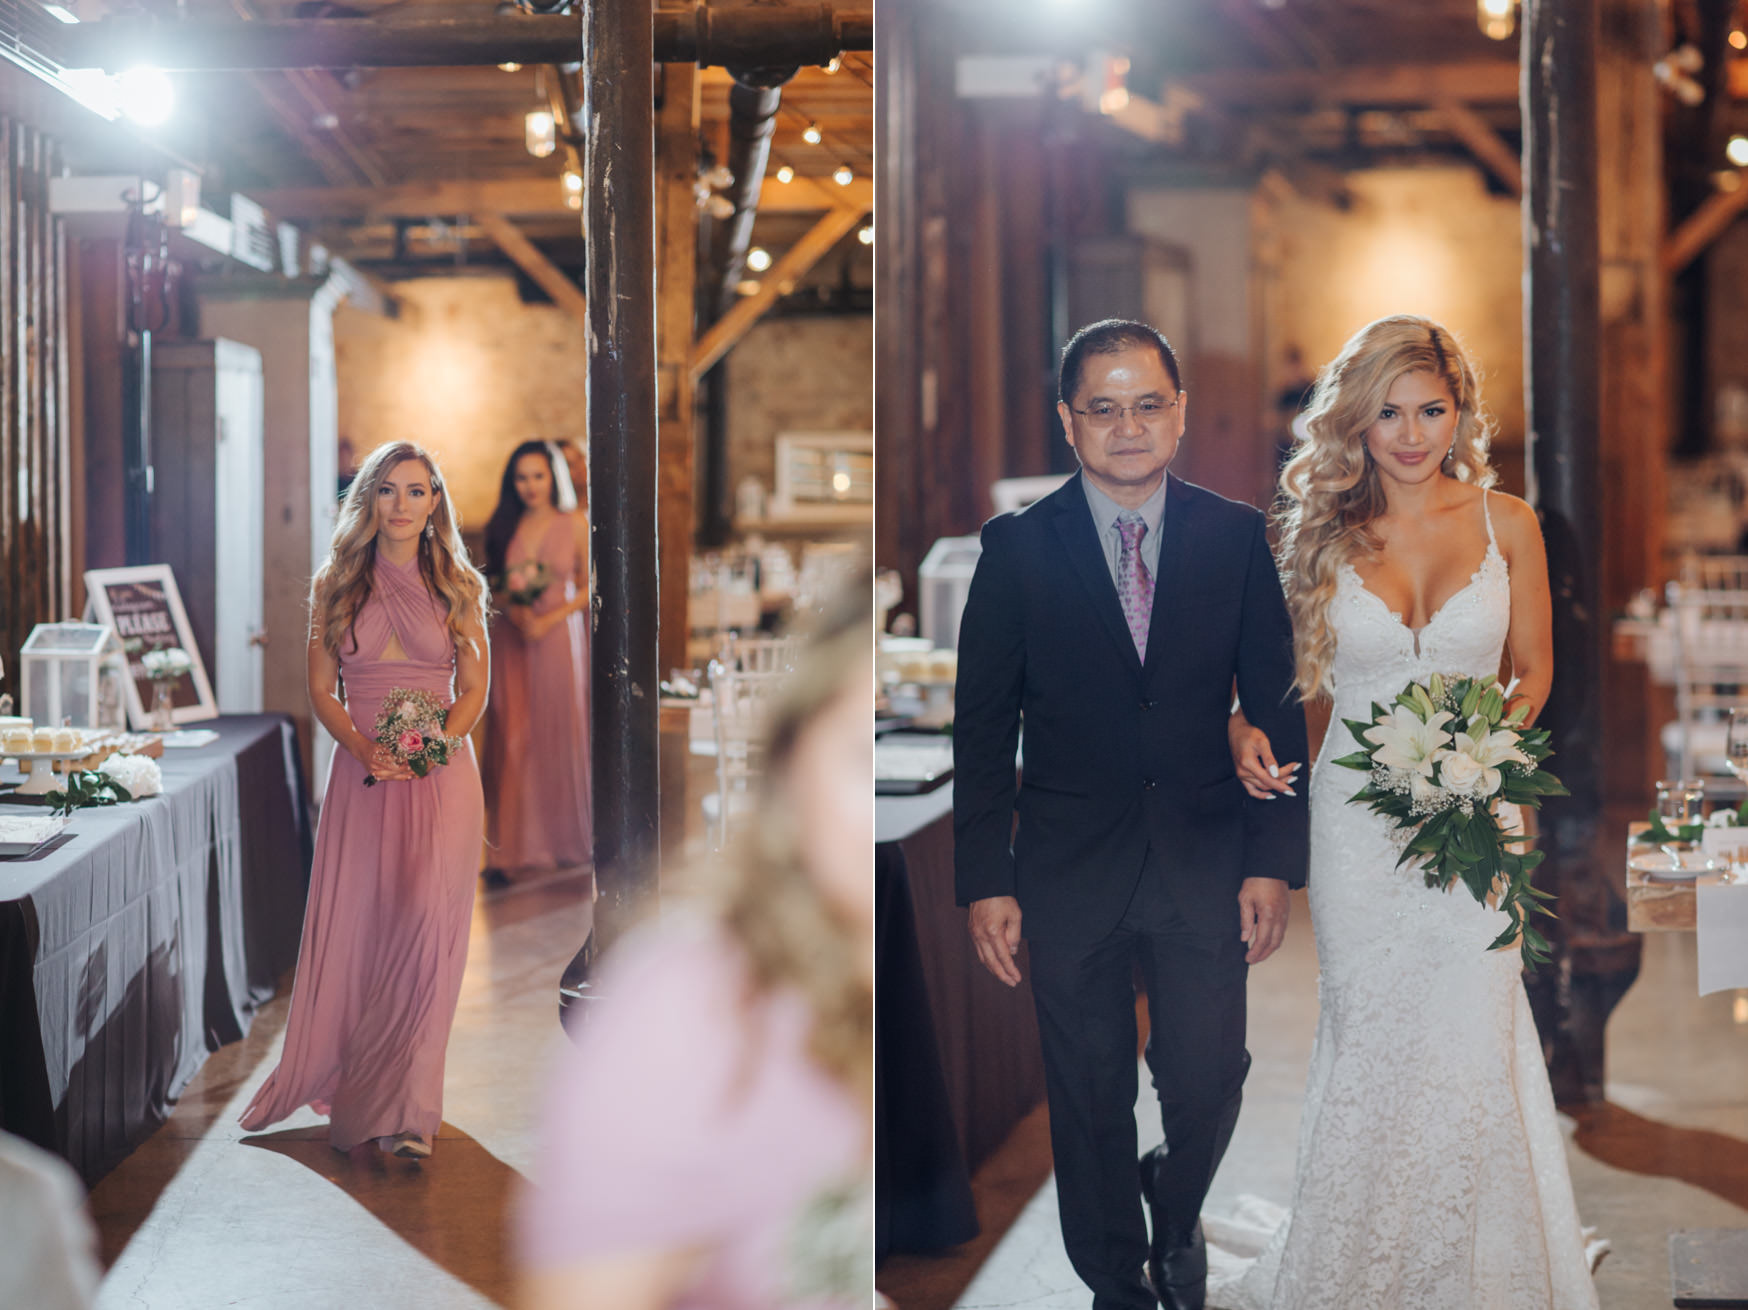 Wedding Ceremony at The Loft